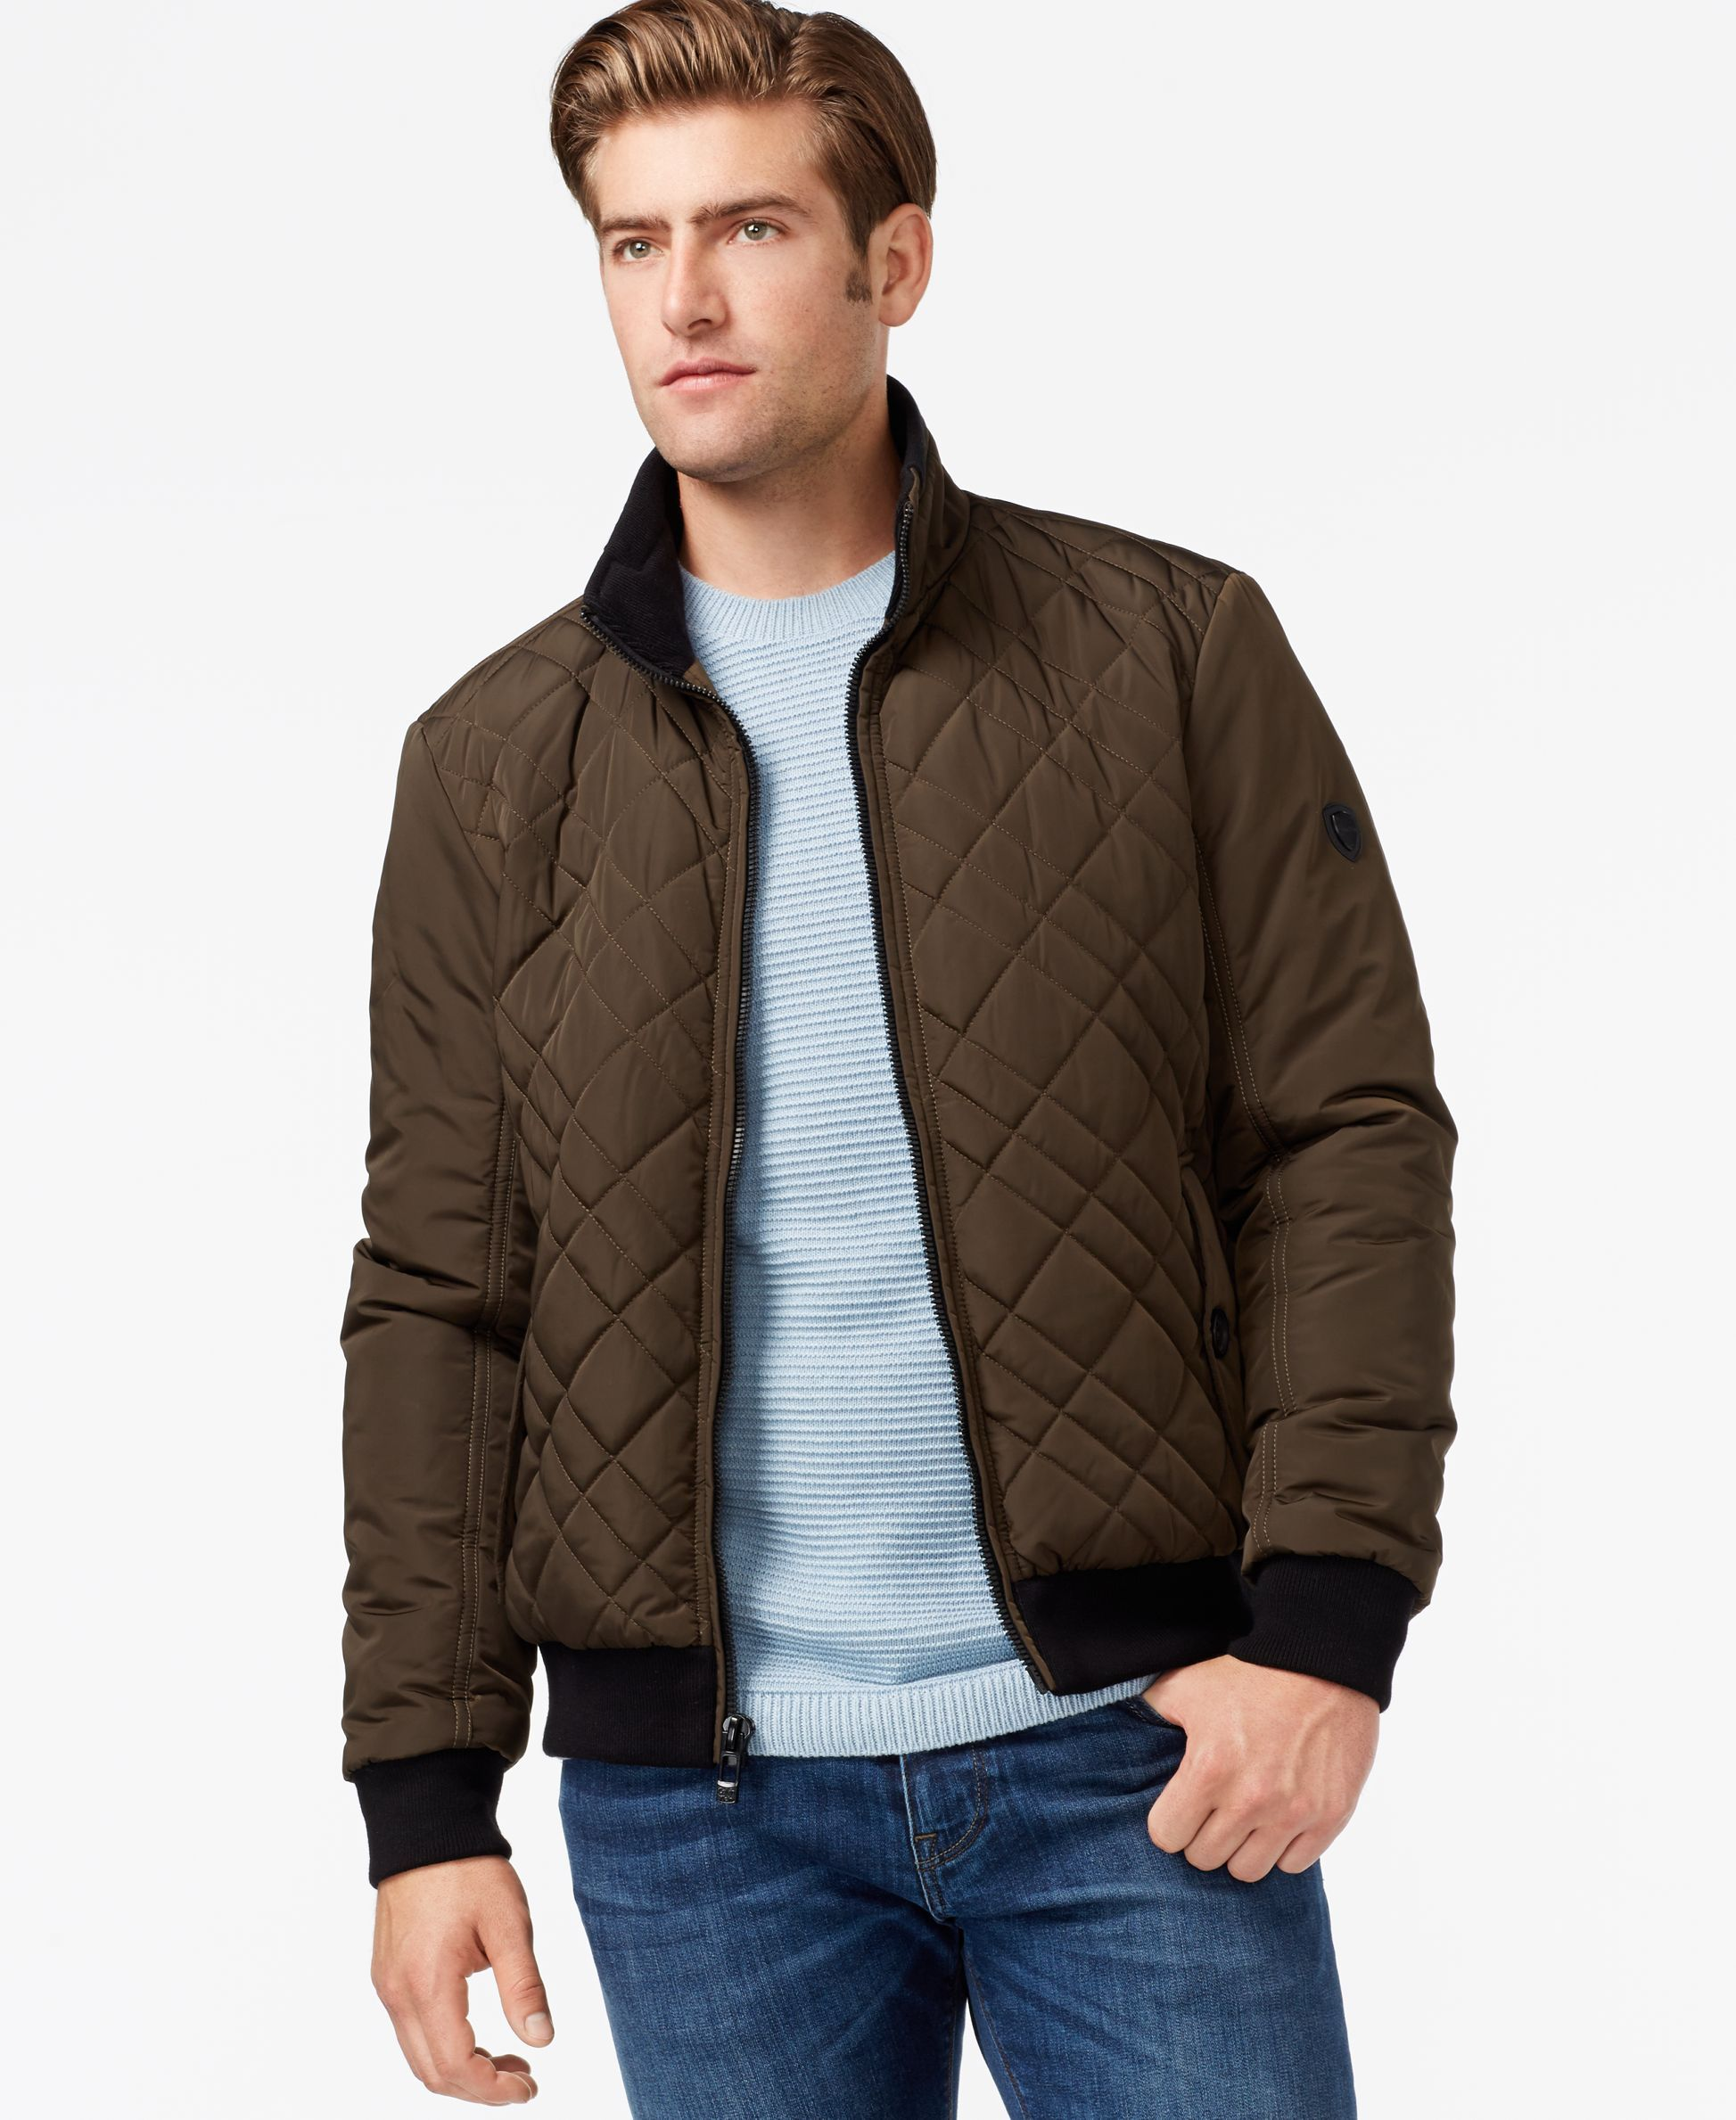 quilt star soul padded cord coat quilted winter bla new itm jacket patches diamond mens hunter